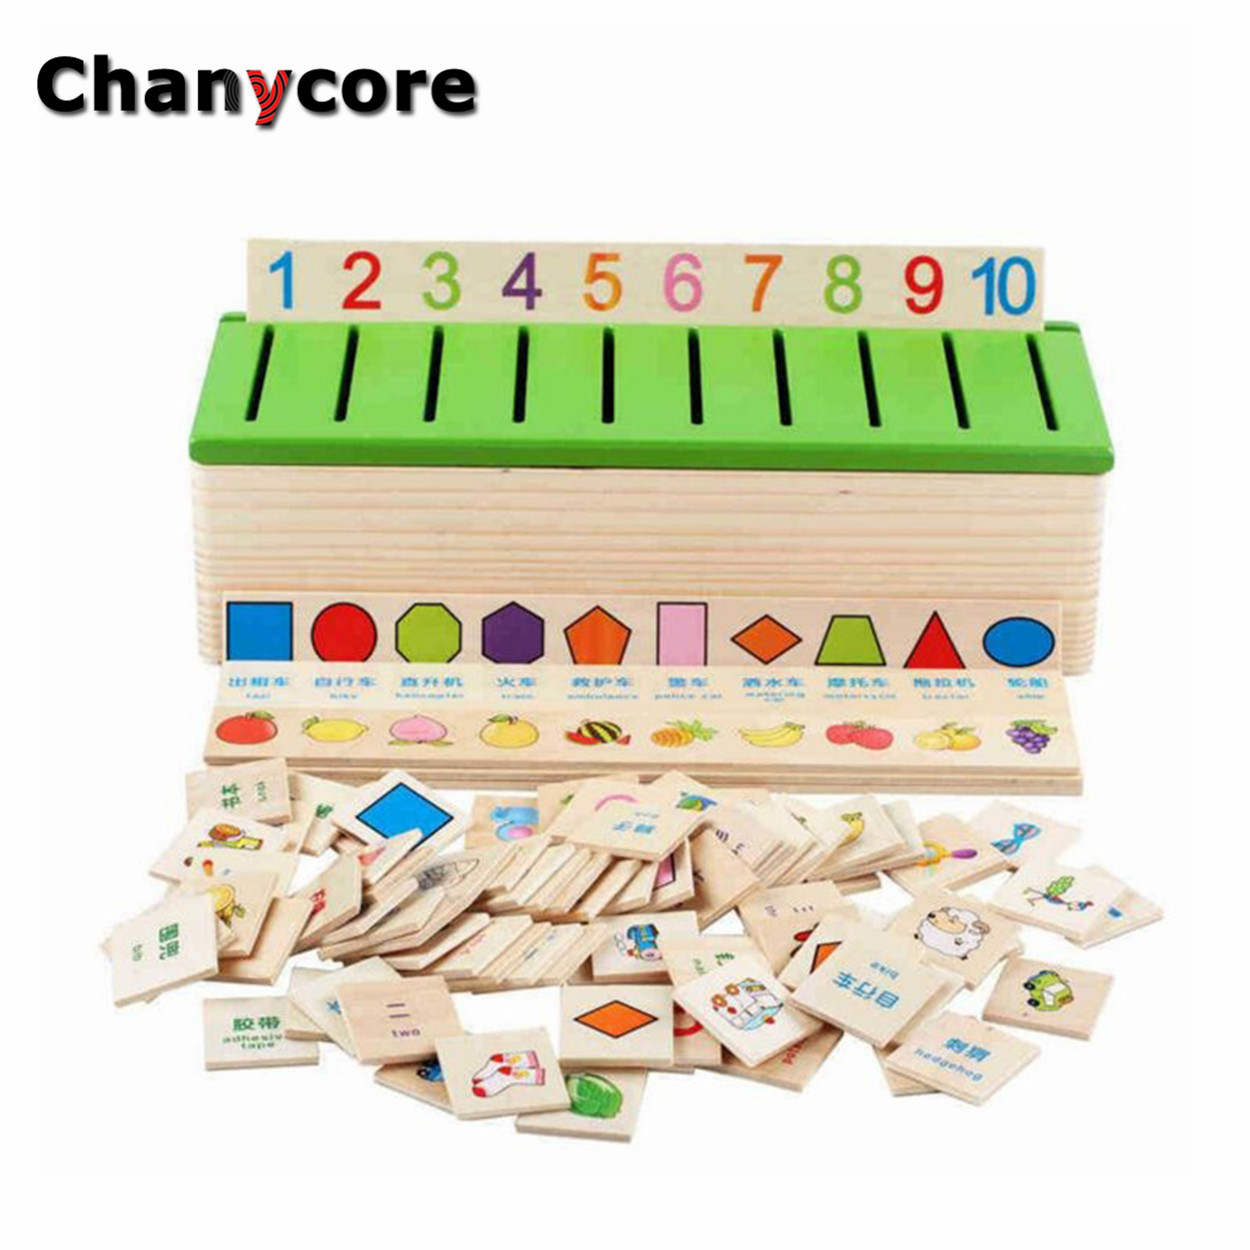 Worksheet Learn Arithmetic Online online get cheap learn arithmetic aliexpress com alibaba group baby learning educational wooden toys box digital cartoon blocks matching sorting enlightenment kids gifts 4030